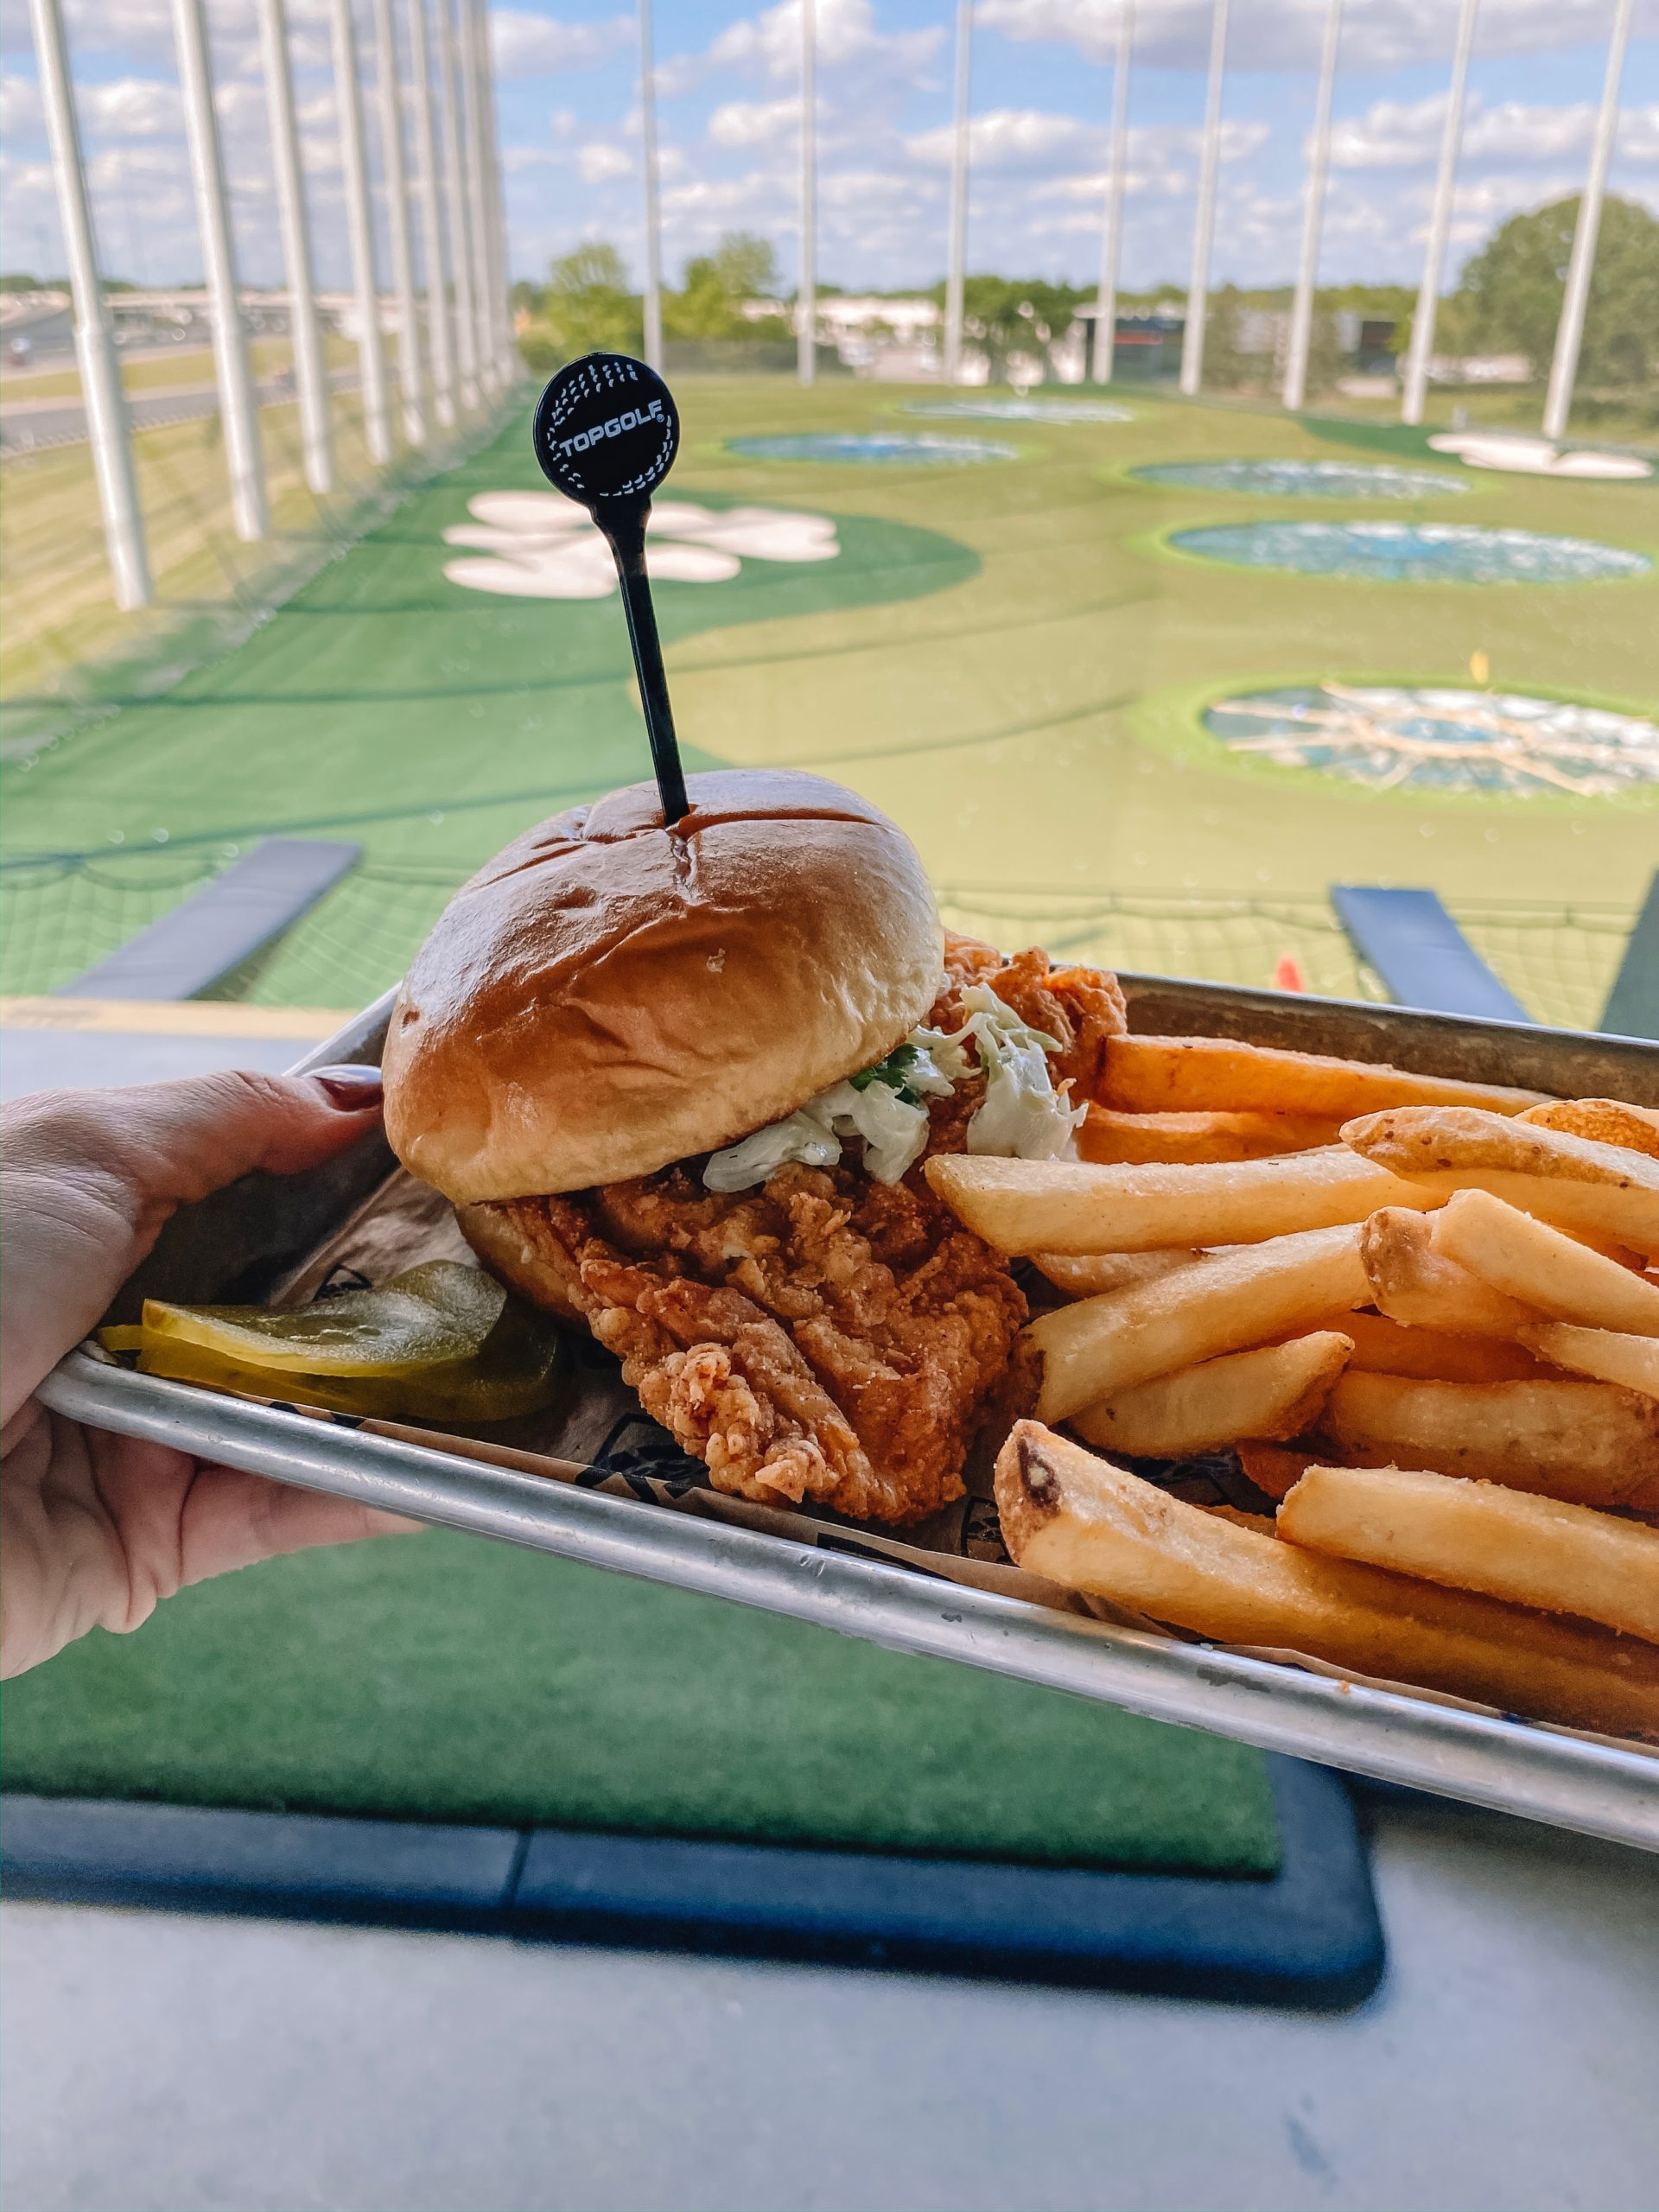 a hand holding up a tray of food which includes a fried chicken sandwich and french fries